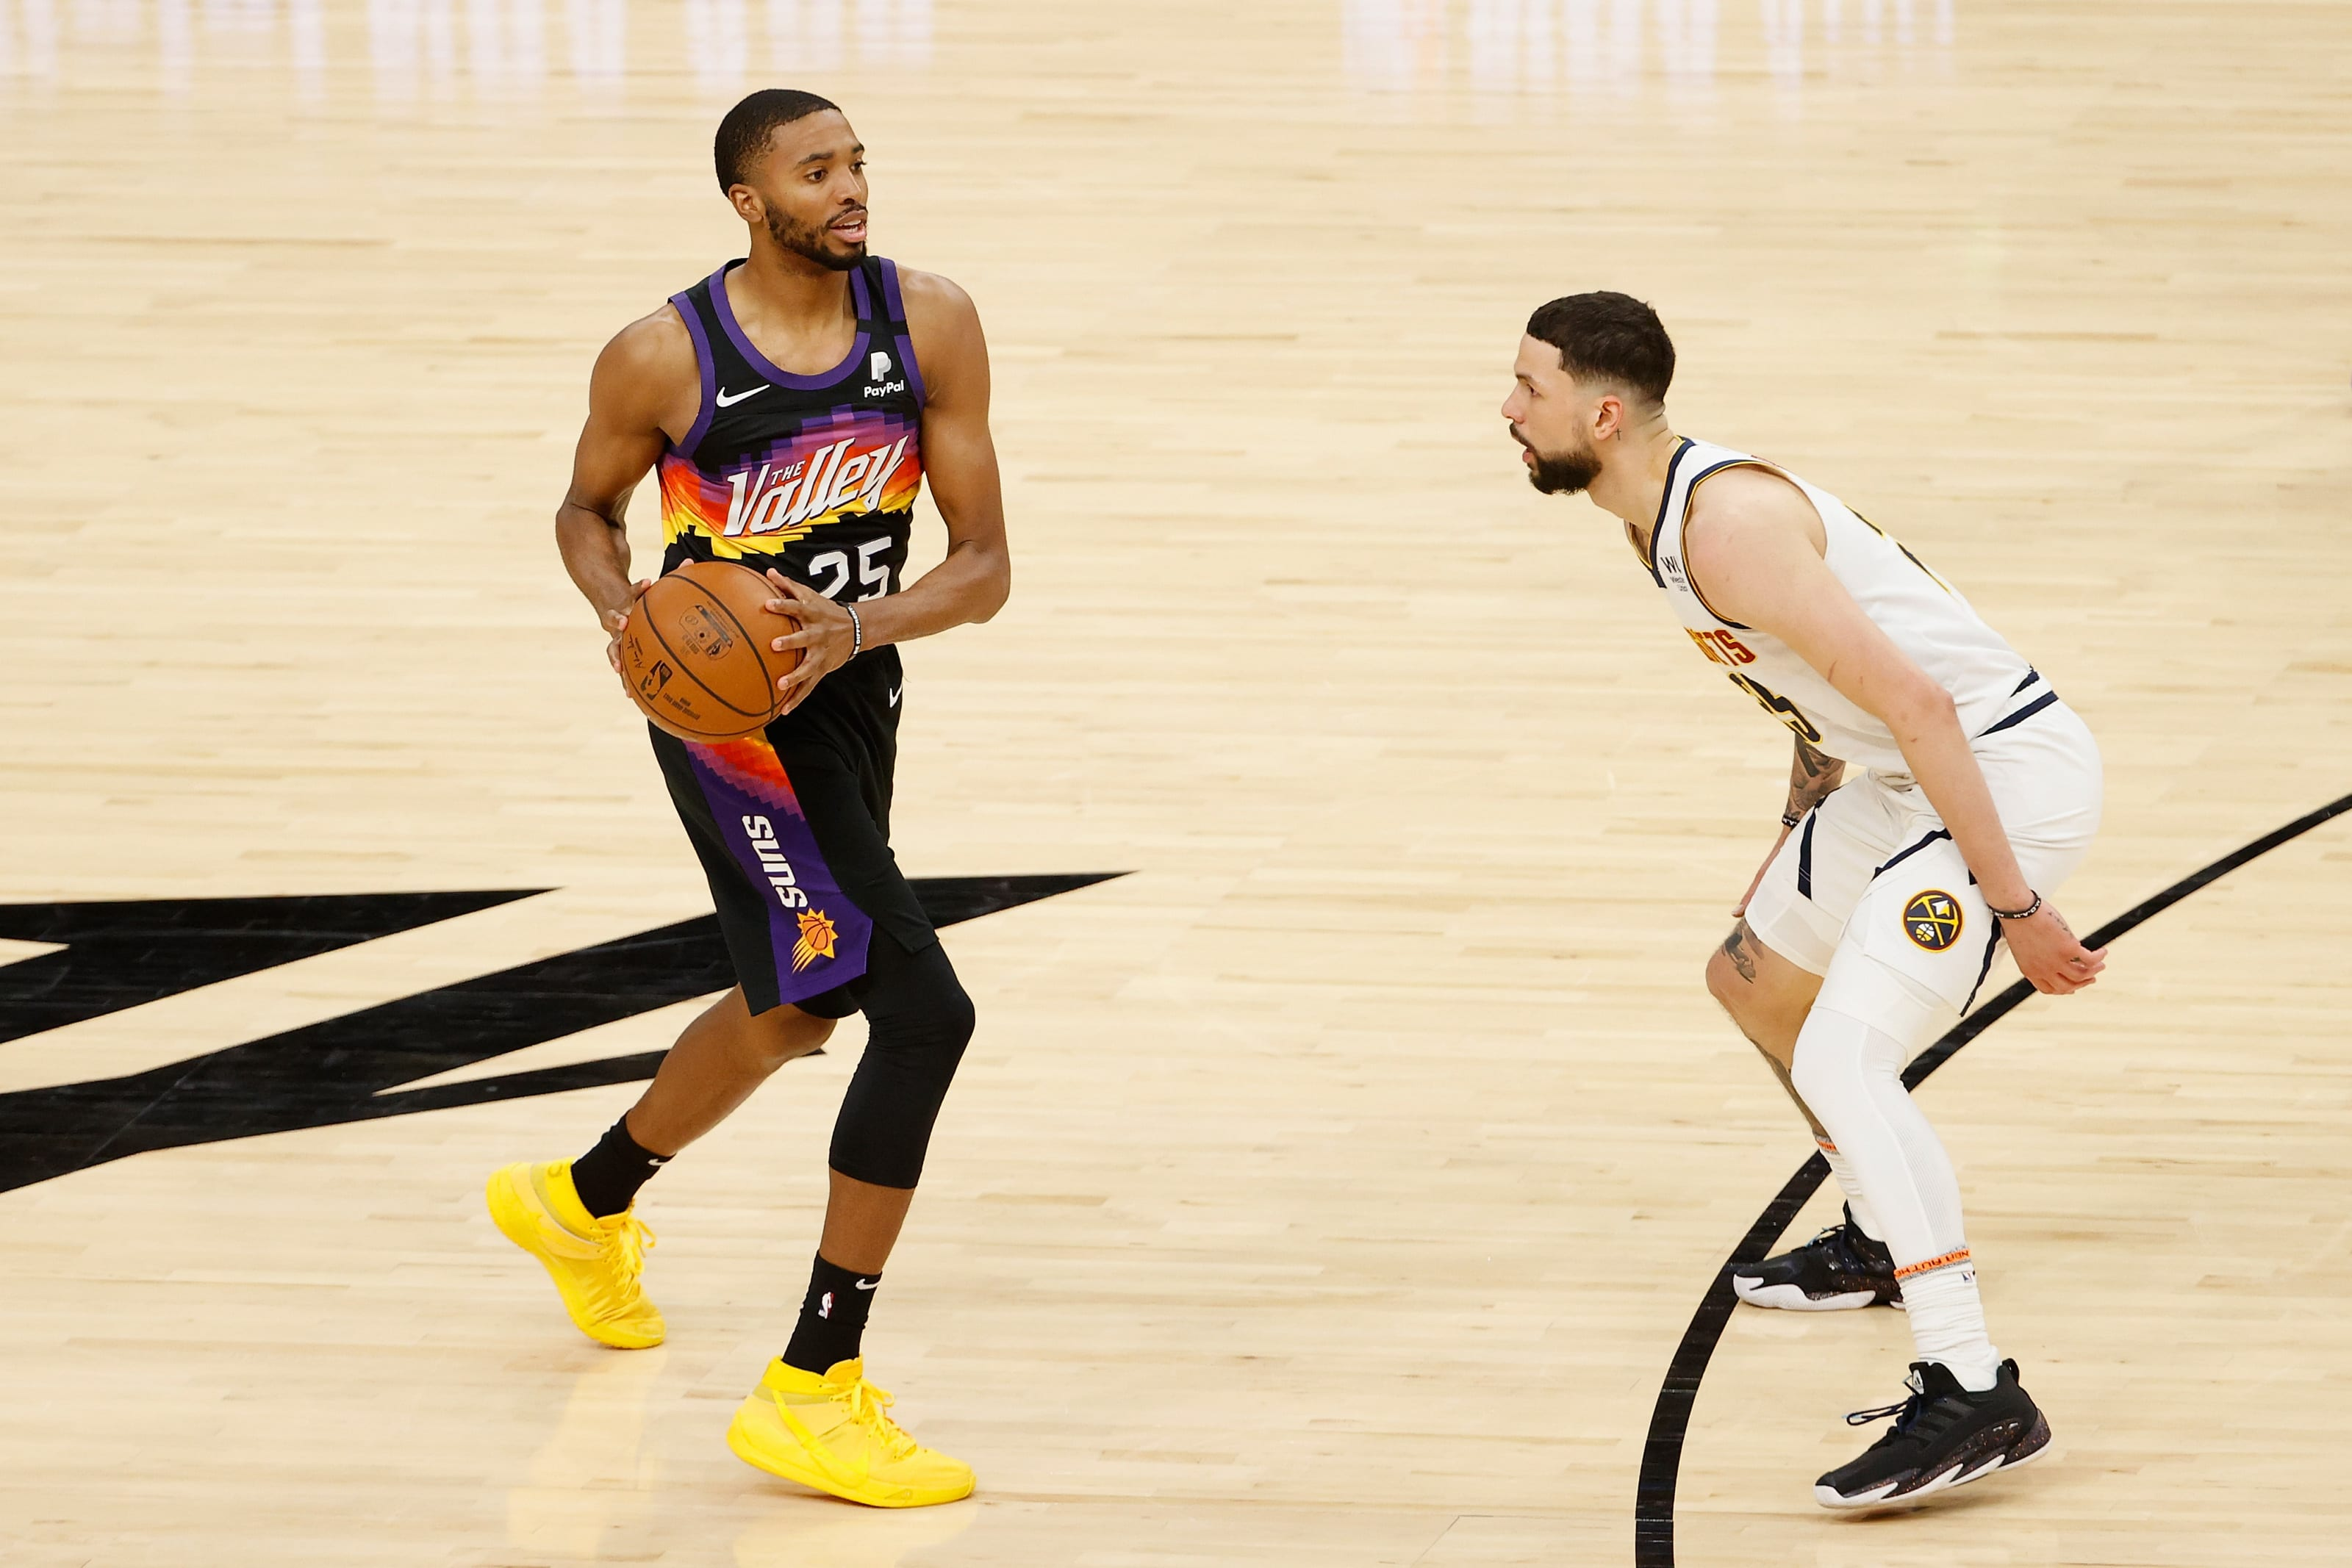 Mikal Bridges, Phoenix Suns looks to pass around Austin Rivers, Denver Nuggets during the NBA Playoffs. (Photo by Christian Petersen/Getty Images)